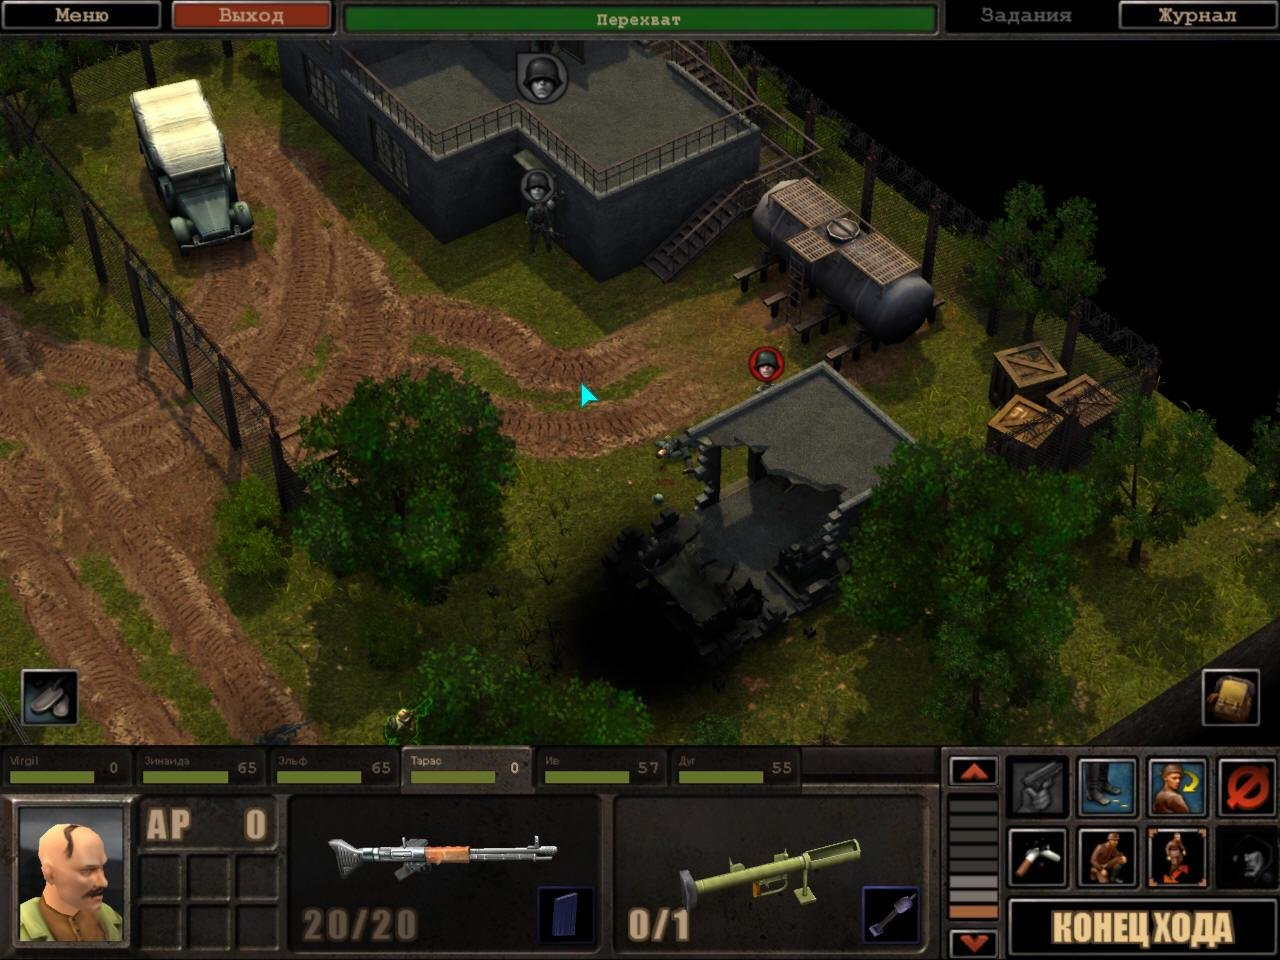 Silent storm: sentinels game mod schwarzt v. 0. 2 download.